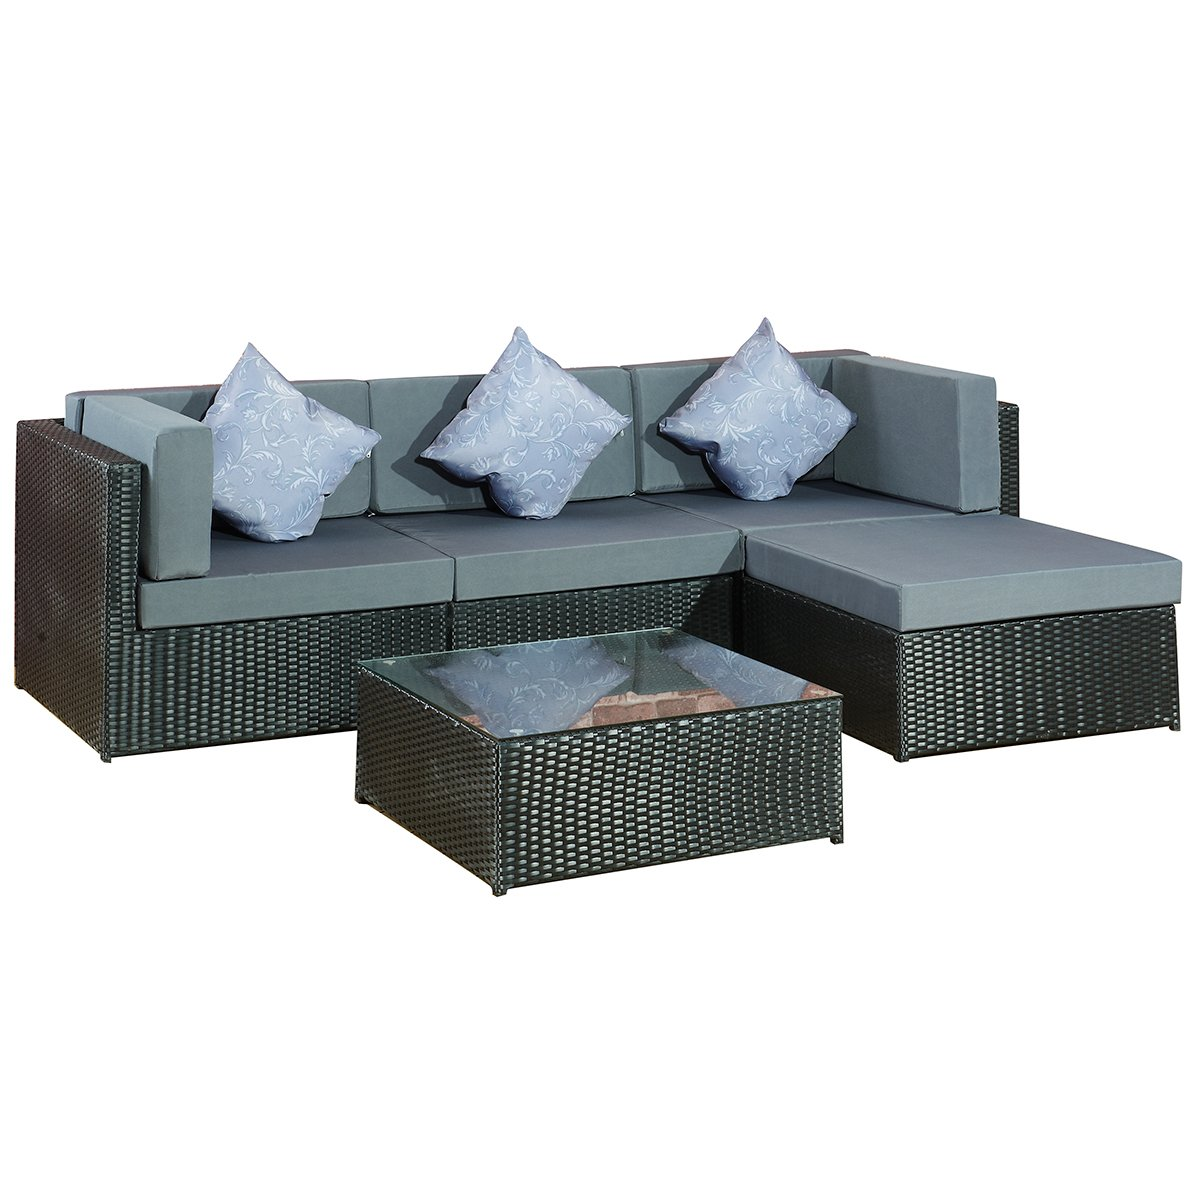 gartenmoebel gartenset bergen ii schwarz grau aus stahl lounge neu xxl rattan polyrattan. Black Bedroom Furniture Sets. Home Design Ideas